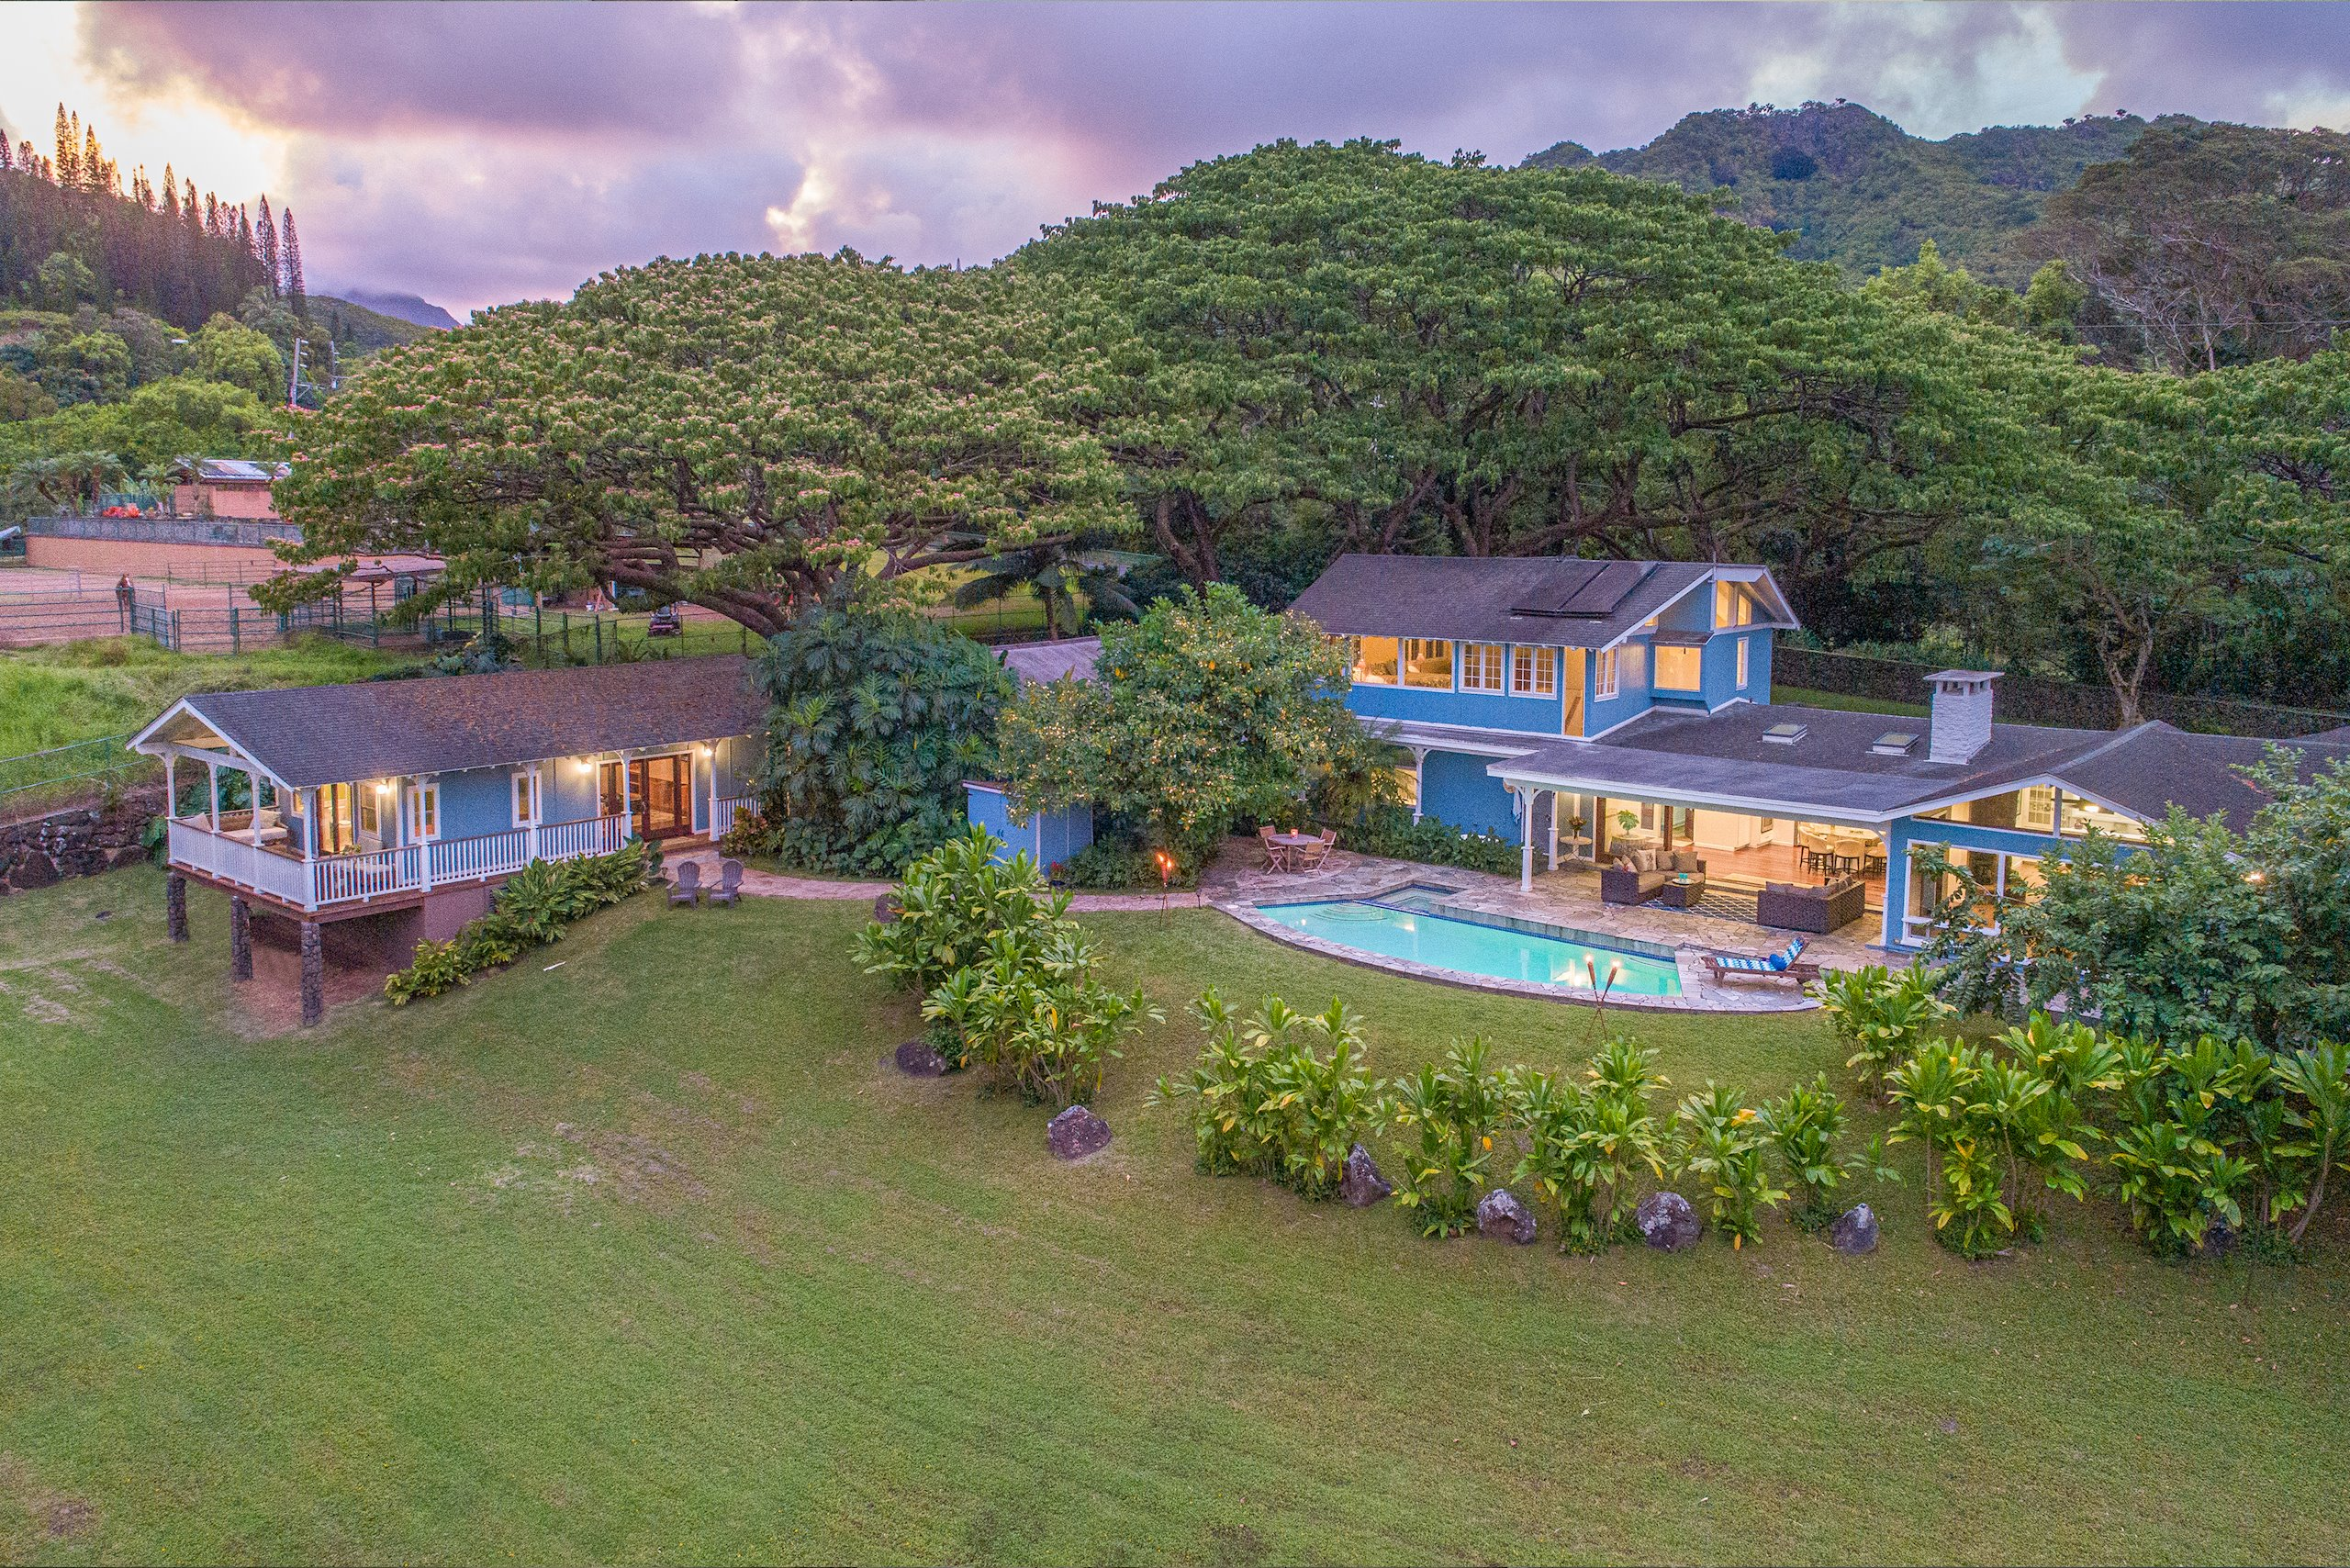 Unique Maunawili 4 BR estate situated on over an acre, zoned country. Main living area opens onto a covered lanai overlooking the pool & the rolling lawn surrounded by tropical landscaping. Remodeled & expanded in 2015, the kitchen features stainless appliances & an expansive island. On one side of the kitchen is a game room & on the other, the living room w/fabulous mountain views. 3 BRs & a bath are beyond the living room. Upstairs is the spacious private master suite w/gorgeous views of Mt Olomana. Past the pool, is the guest cottage built in 2011, w/a bedroom, bathroom & living area, & a covered lanai enjoying the mountain views & breezes. As quiet & private as the home feels, it is a short drive to Kailua-town, Kailua's Beaches & an easy hop to the Pali or H-3 to head to Honolulu.